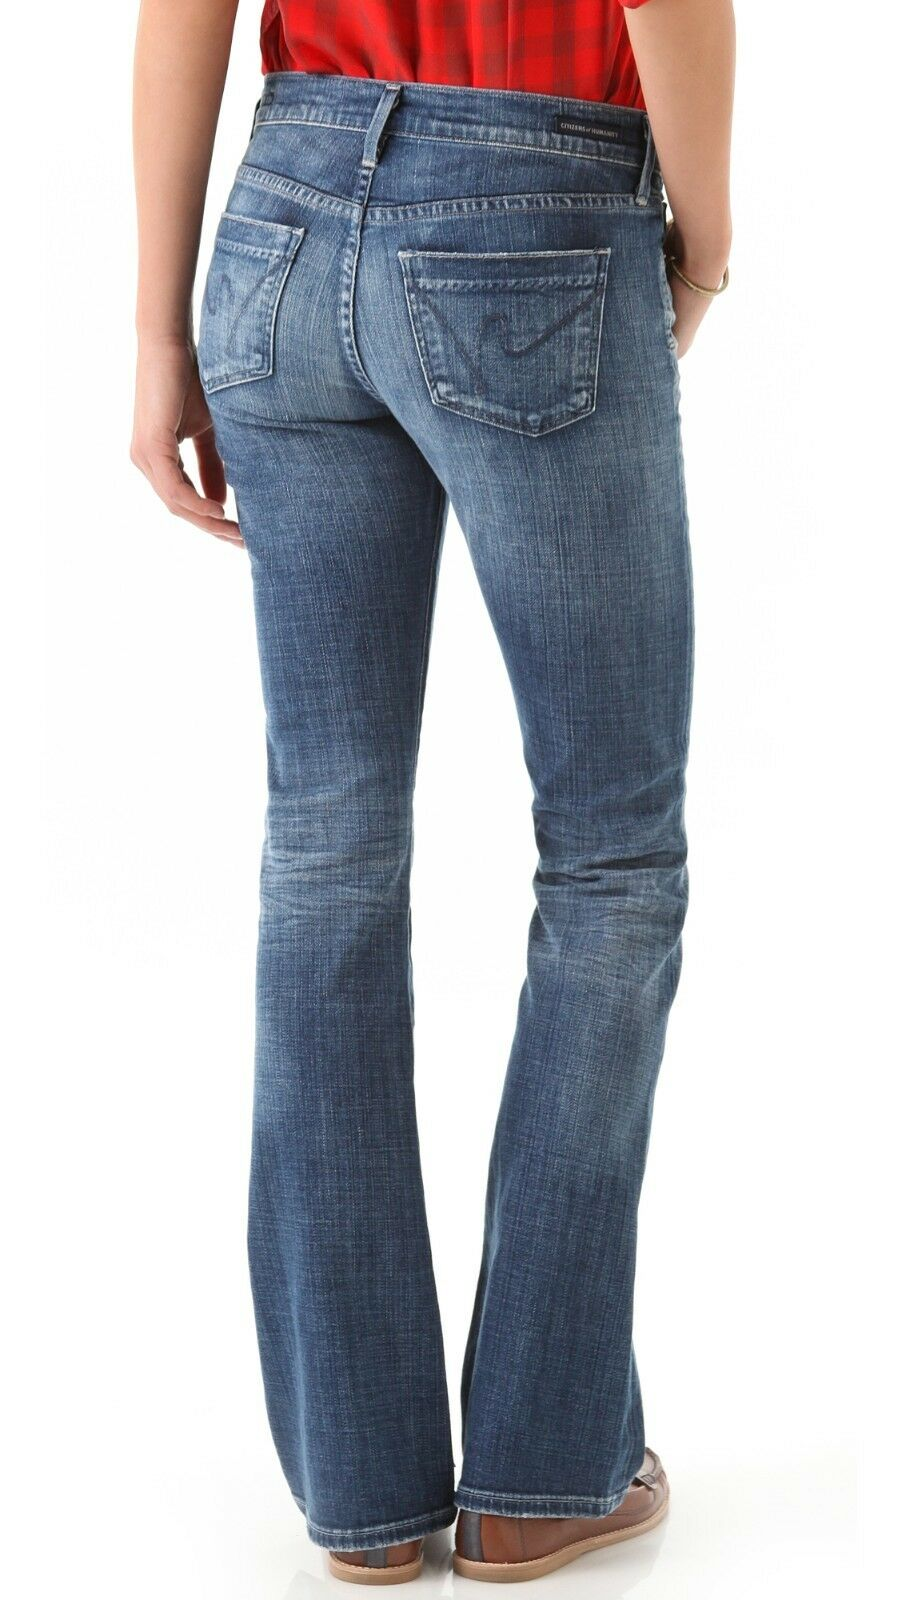 Petite hunting jeans 4